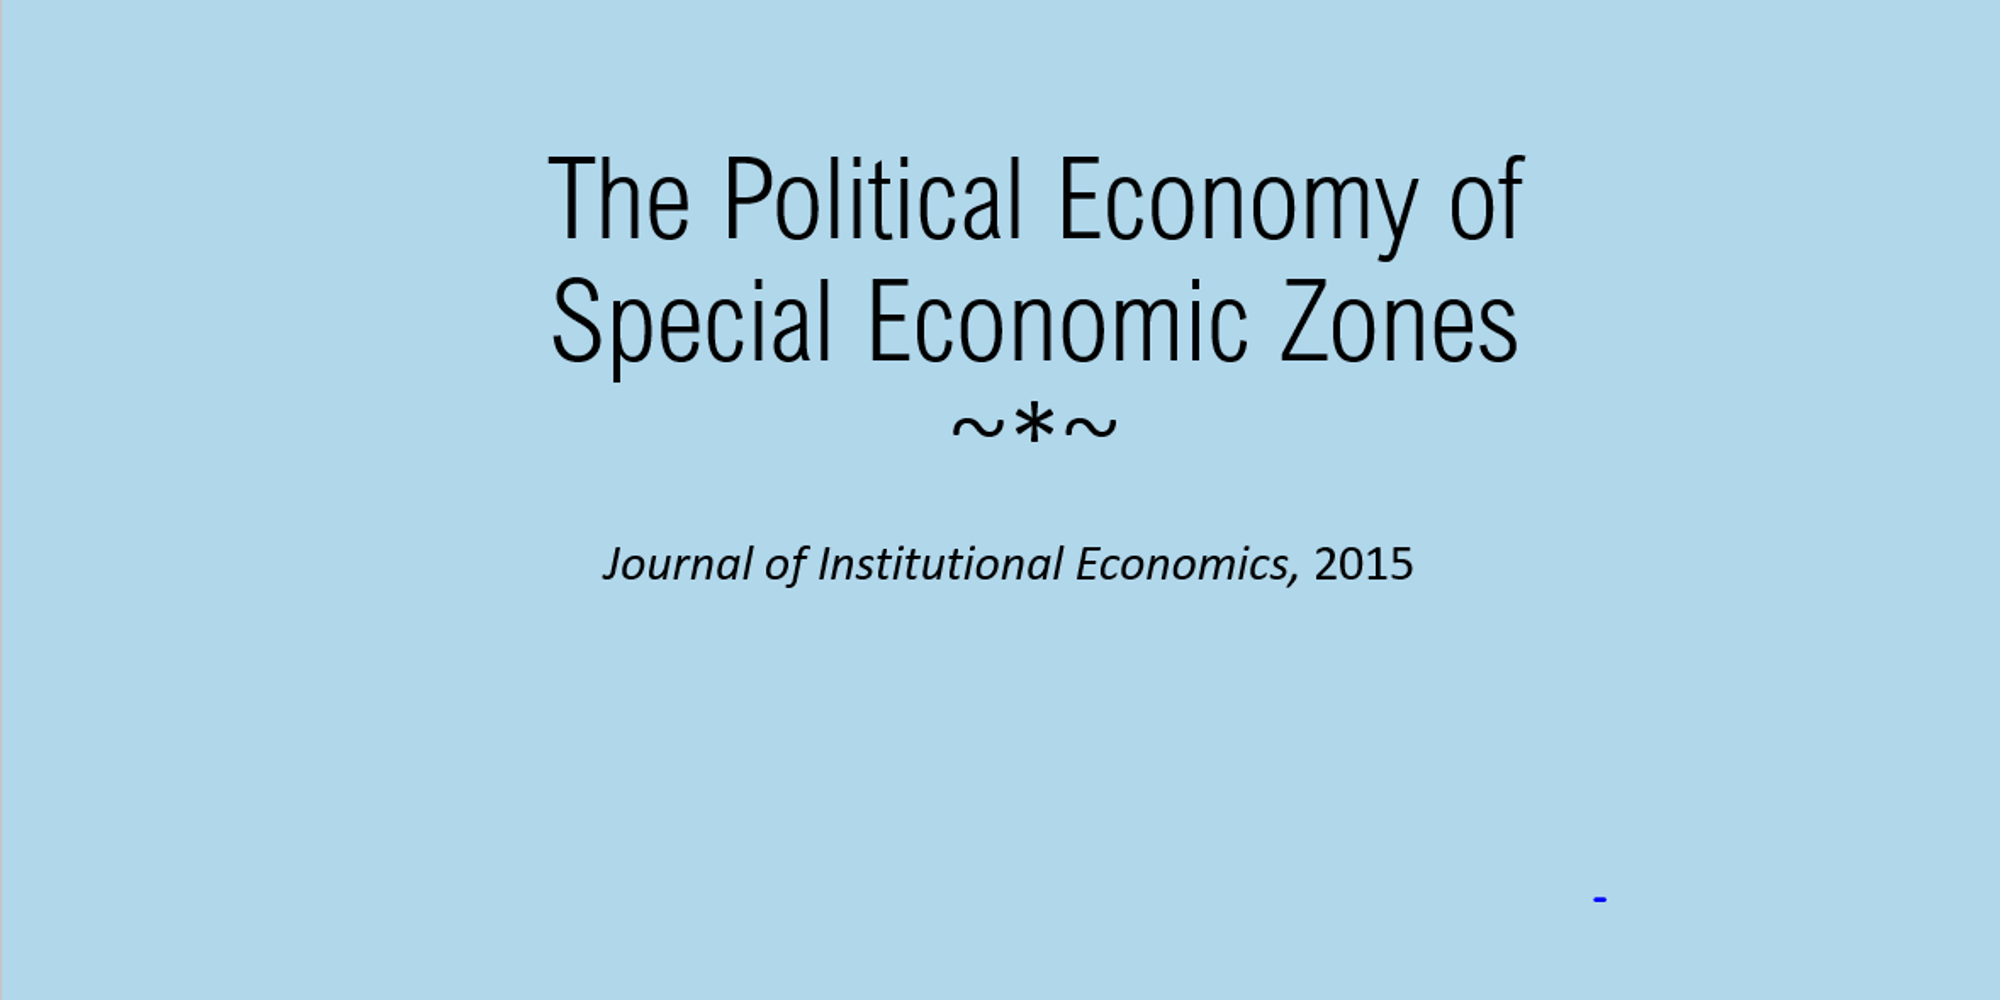 """Introduction for """"The Political Economy of Special Economic Zones"""" content on the site for Lotta Moberg, PhD, CFA."""